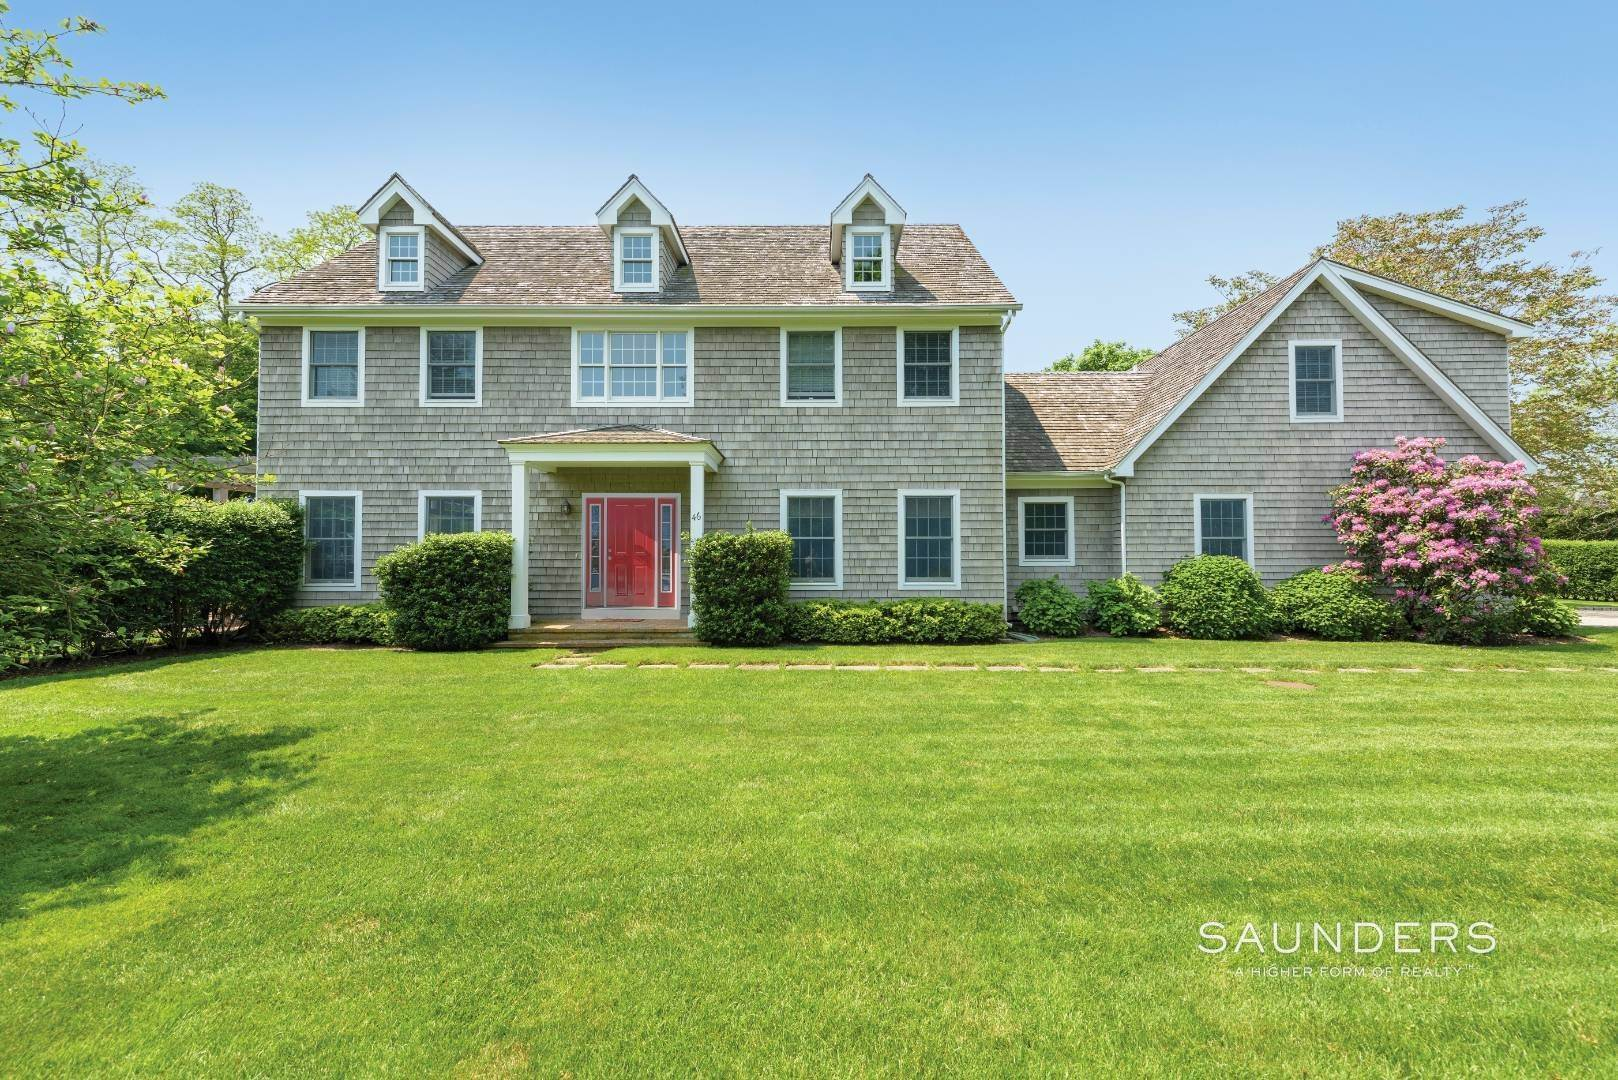 Single Family Homes at Bridgehampton Estate With Tennis 46 Norris Lane, Bridgehampton, Southampton Town, NY 11932